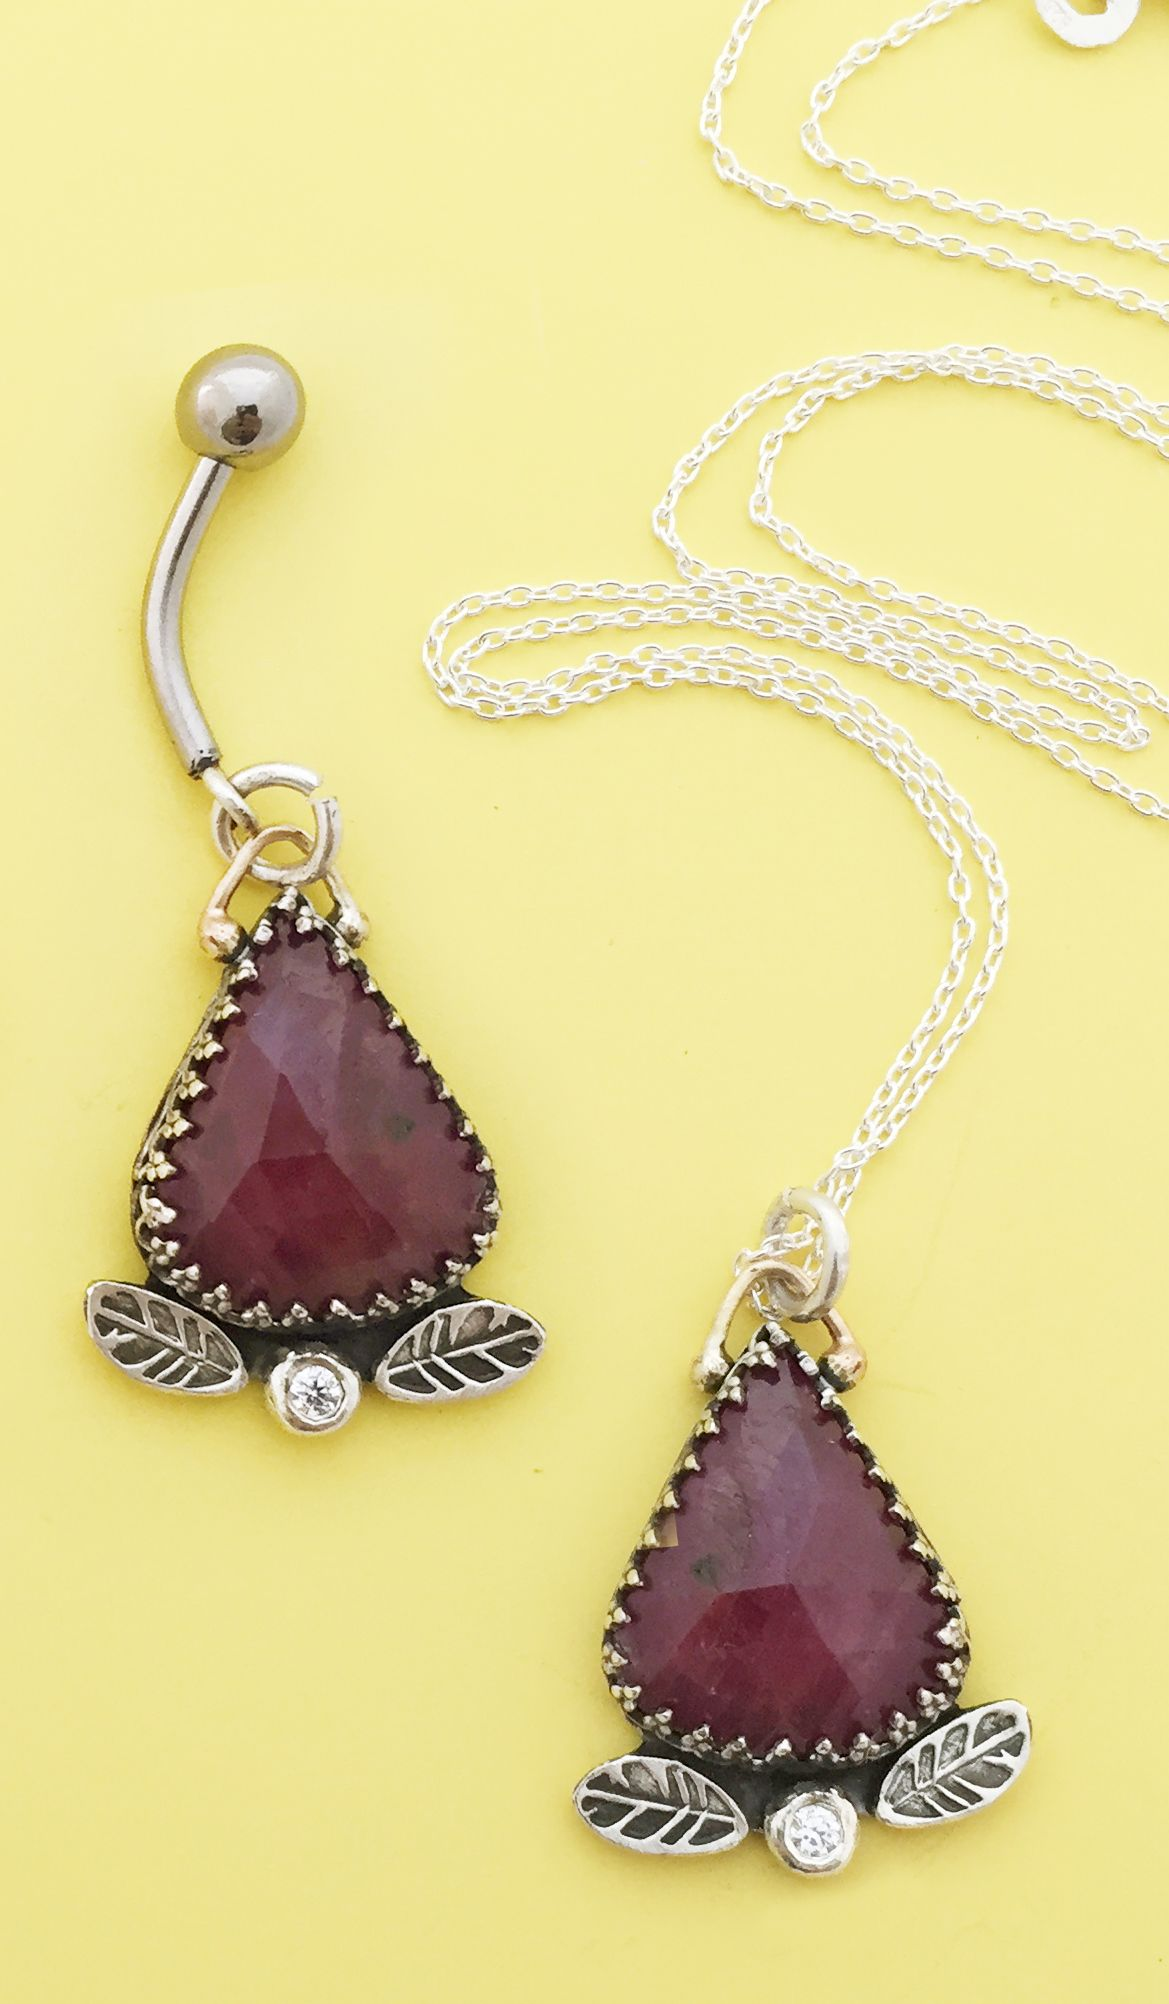 Belly button piercing plus size  The classiest belly button ring and necklace ever Rose cut ruby